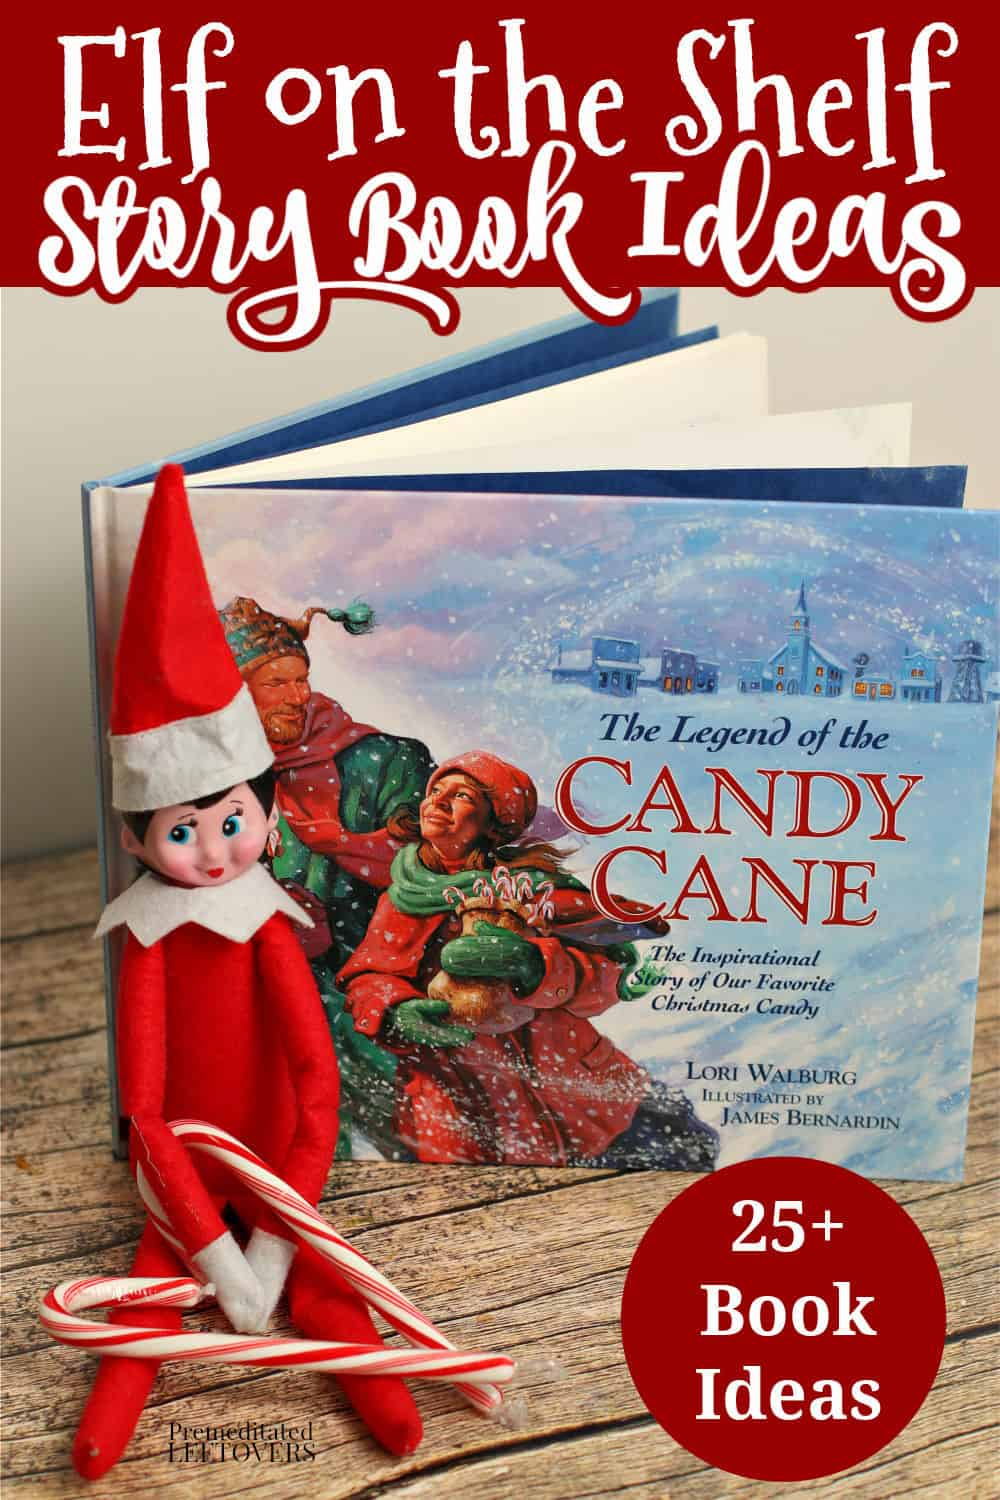 Elf on the Shelf idea using candy canes and The Legend of the Candy Cane book